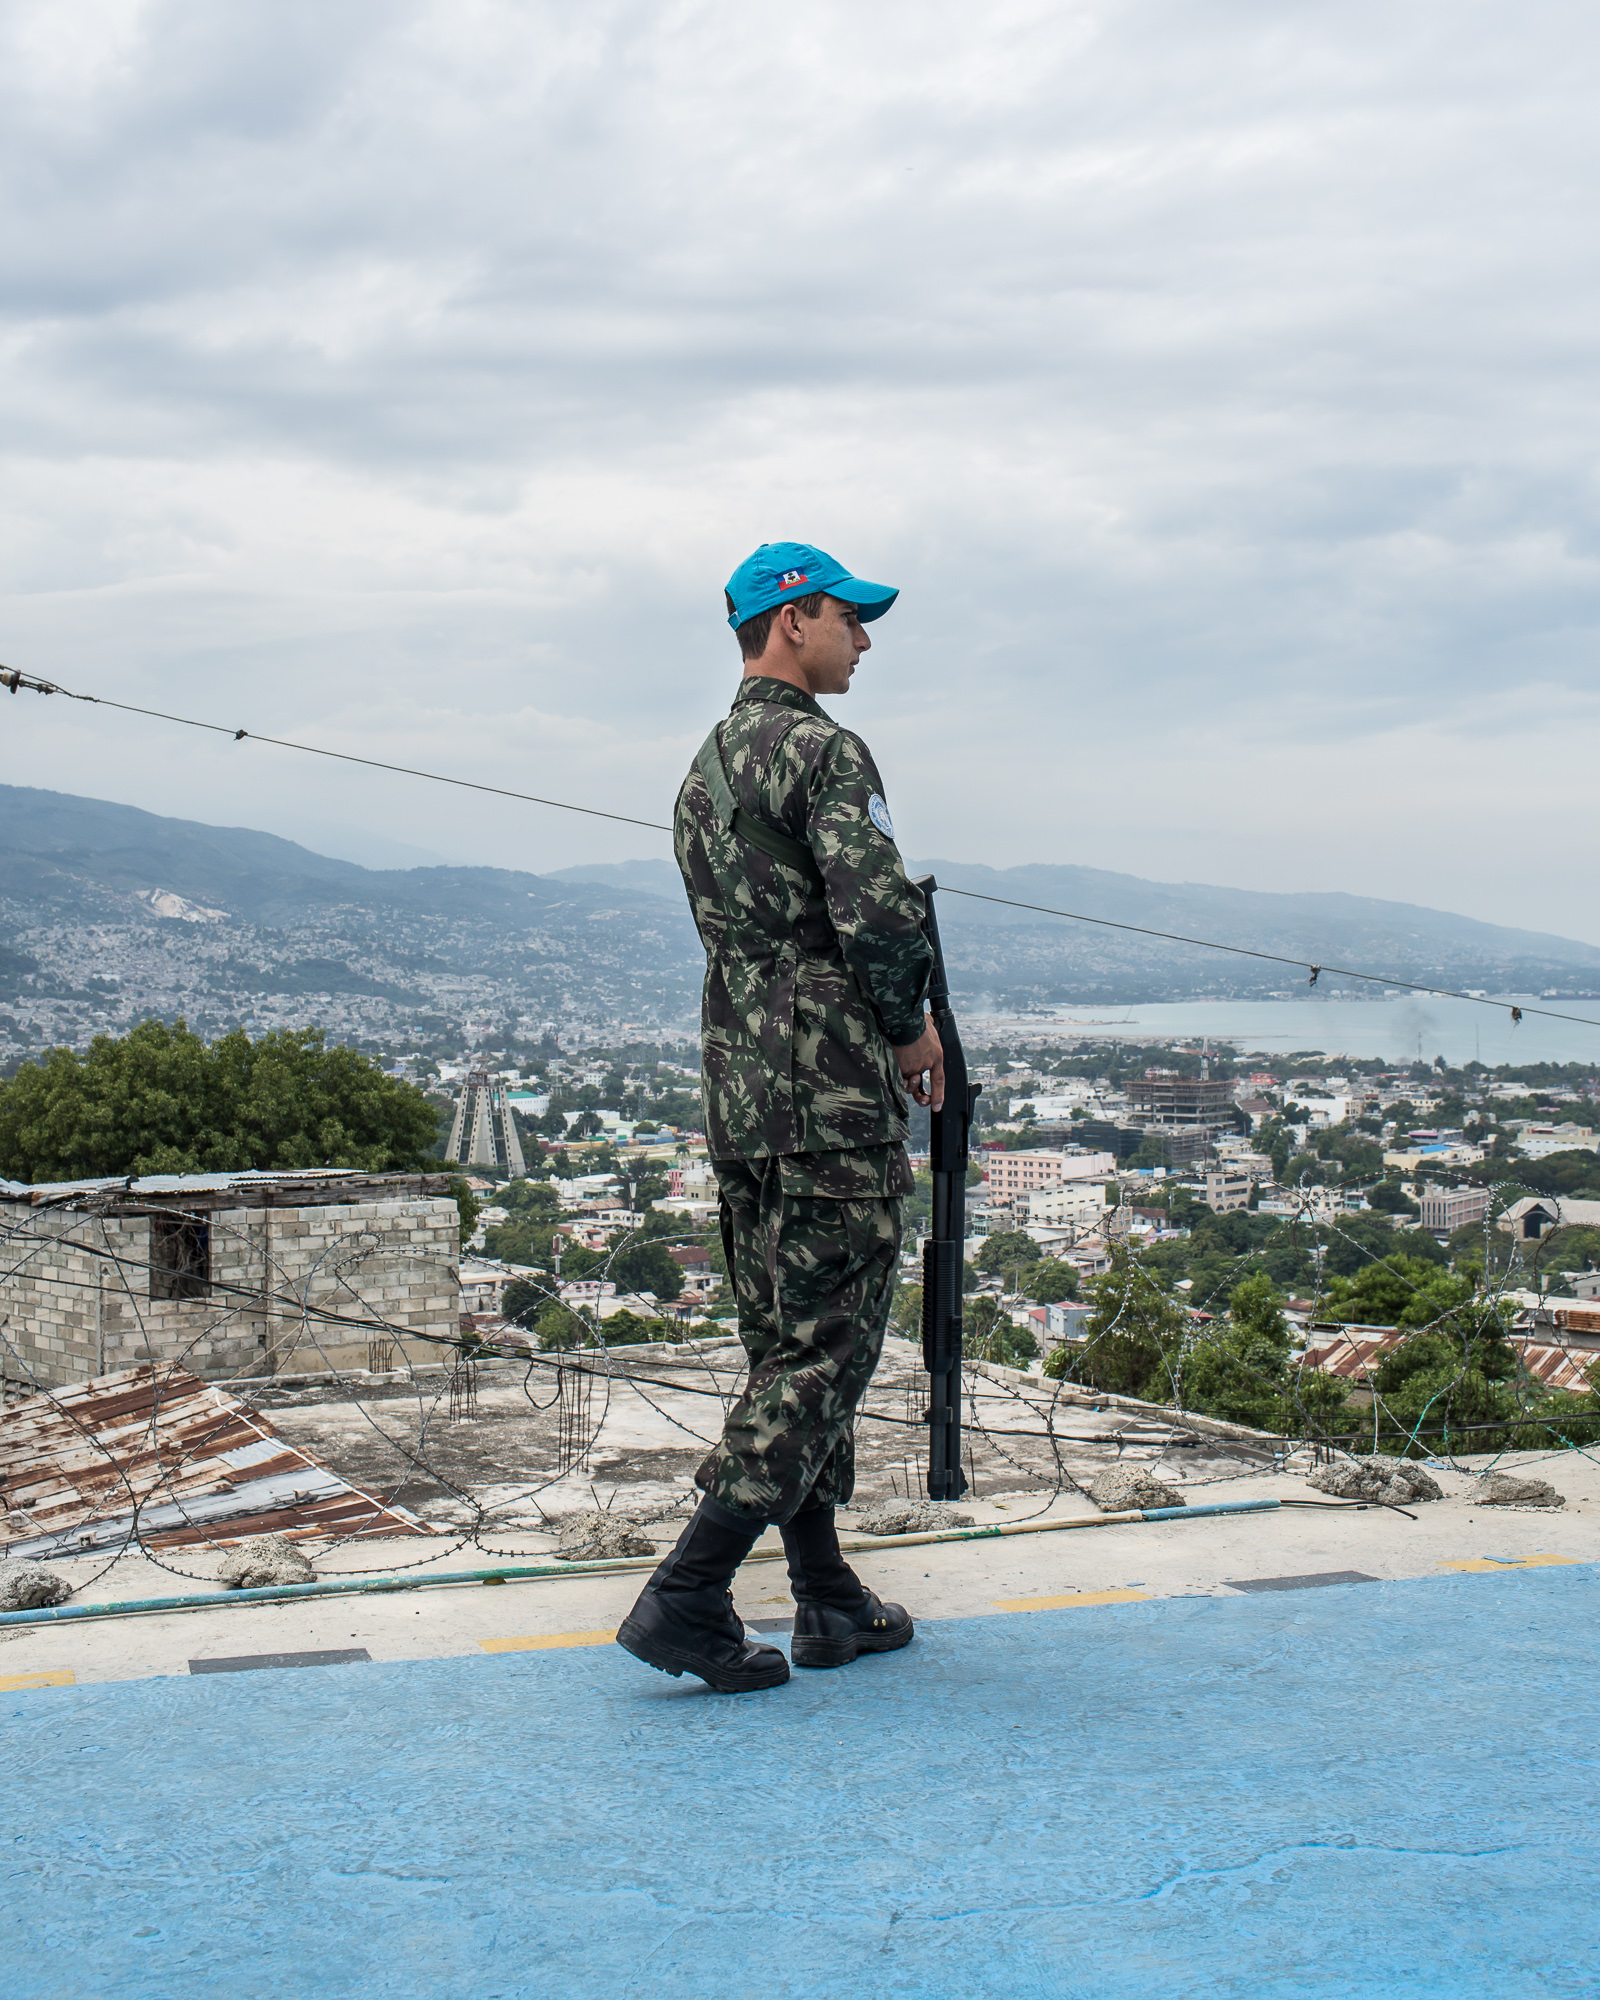 A UN peacekeeping soldier from Brazil, operating under the auspices of MINUSTAH, at his base in Fort National on Tuesday, December 16, 2014 in Port-au-Prince, Haiti. The UN has a controversial record in Haiti, and is extremely unpopular.